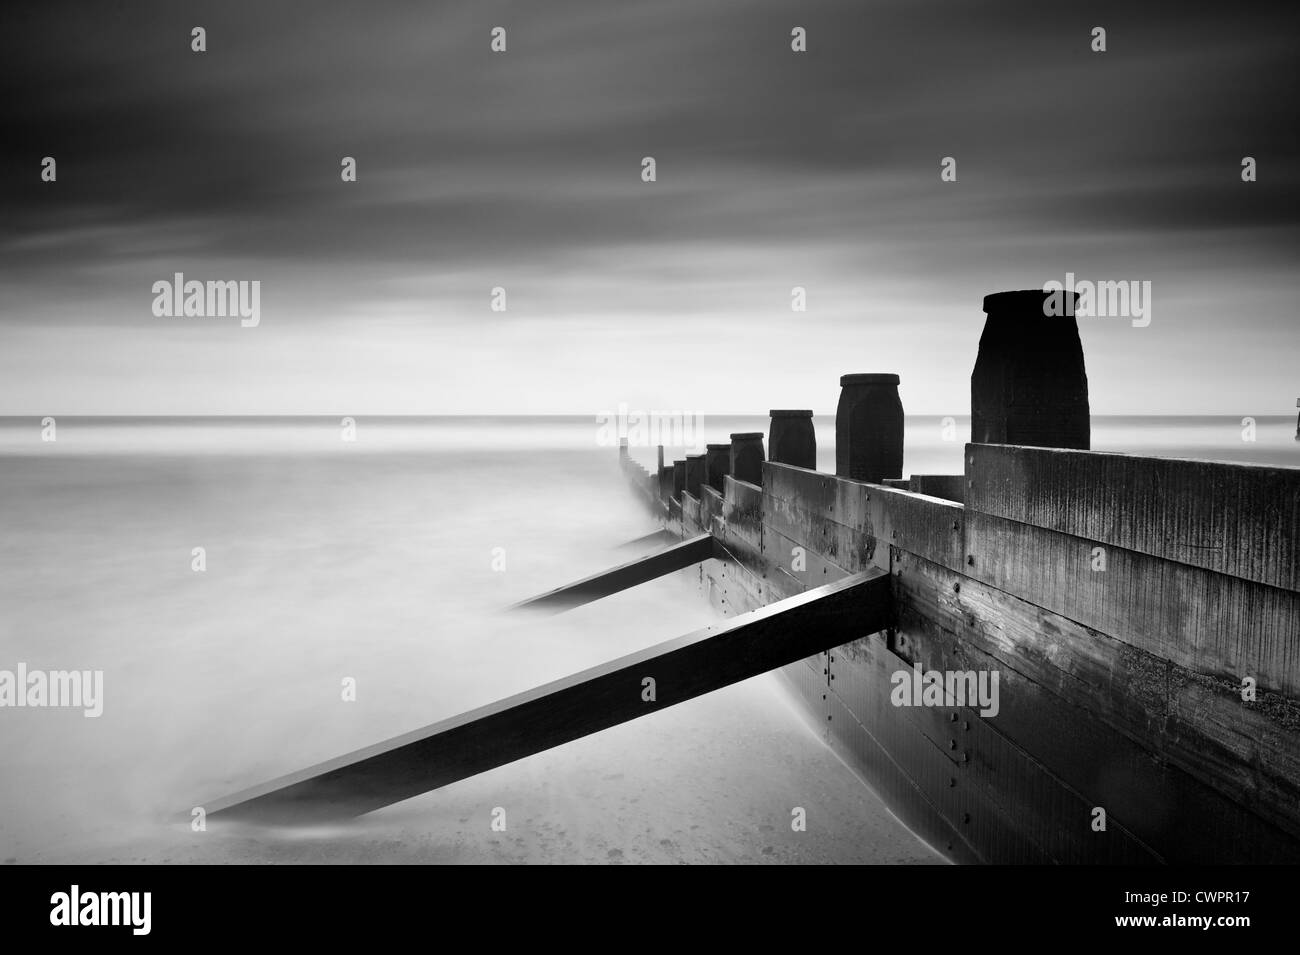 Groynes at Southwold, Suffolk - Stock Image